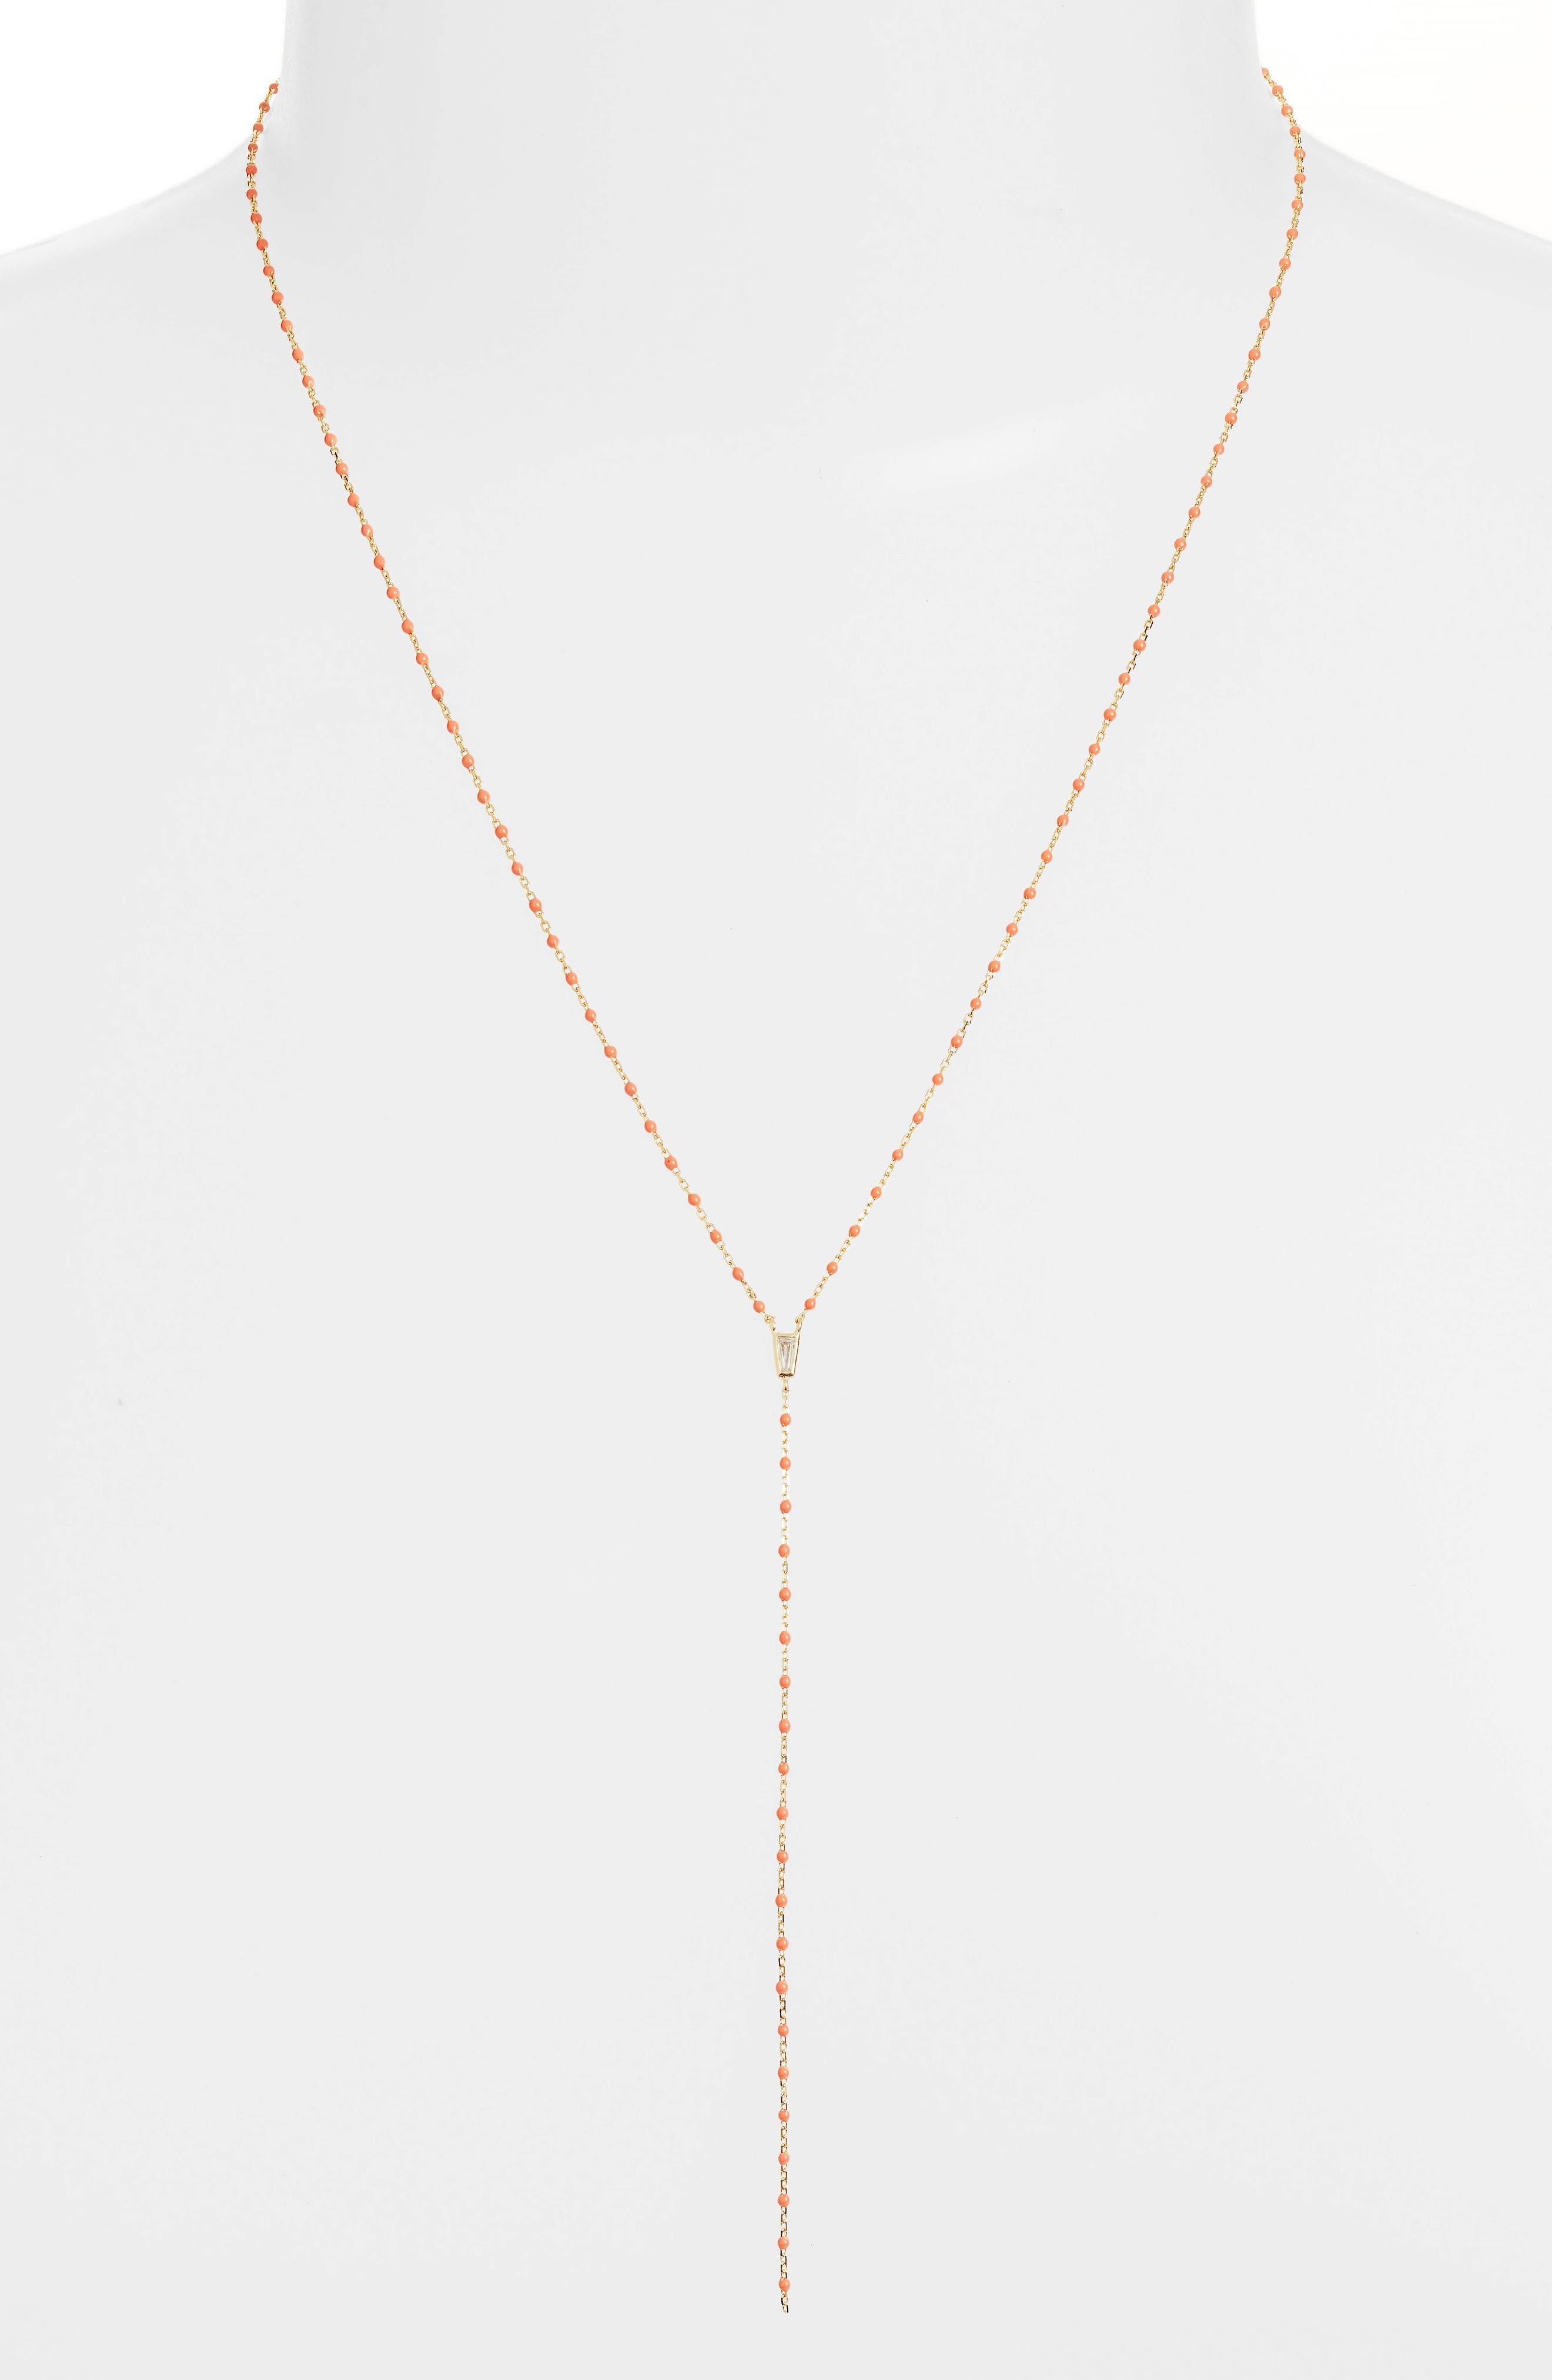 Beaded Lariat Necklace,                         Main,                         color, Gold/ Coral